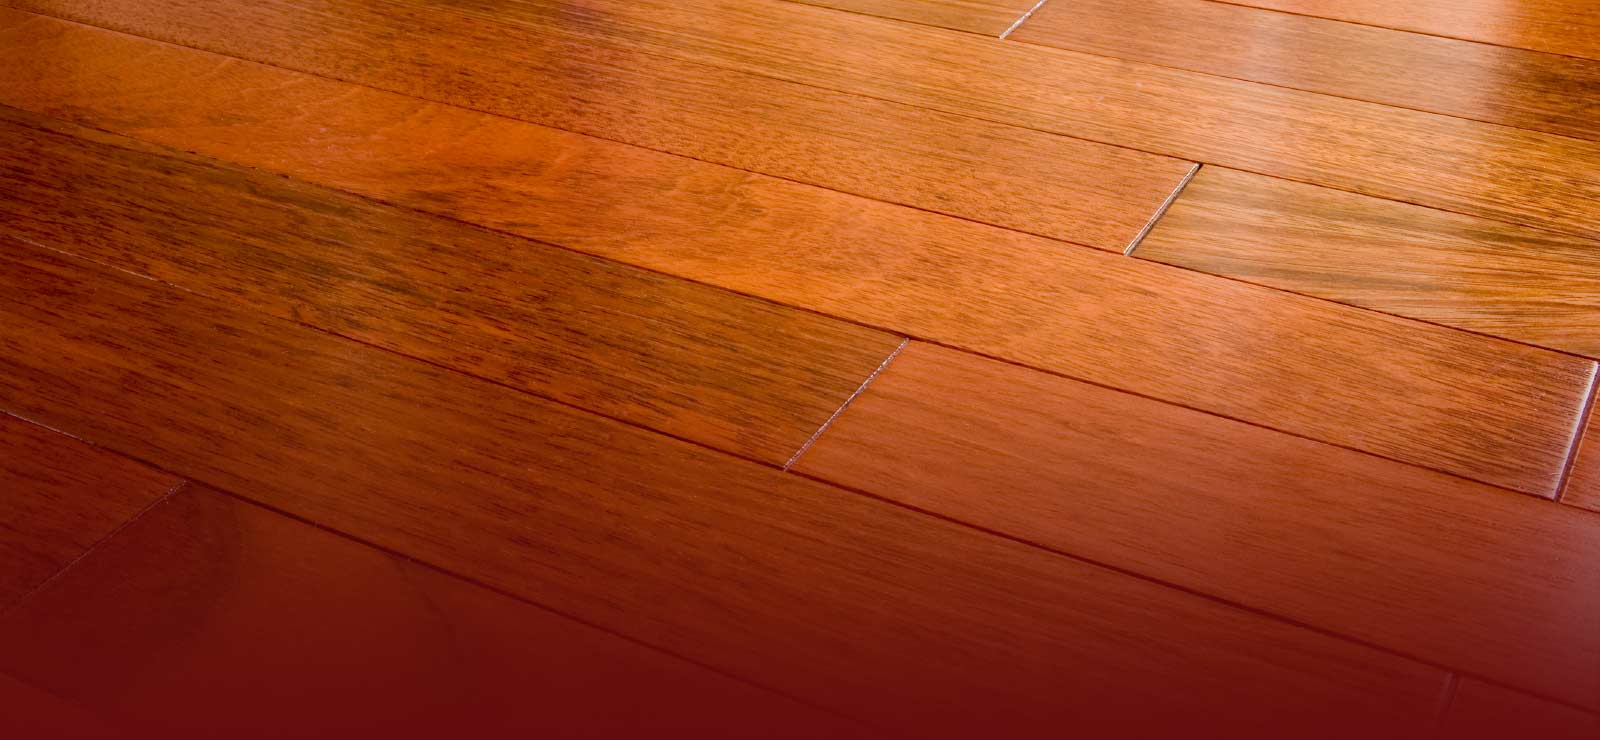 Prefinished Crawford Construction Hardwood Floors